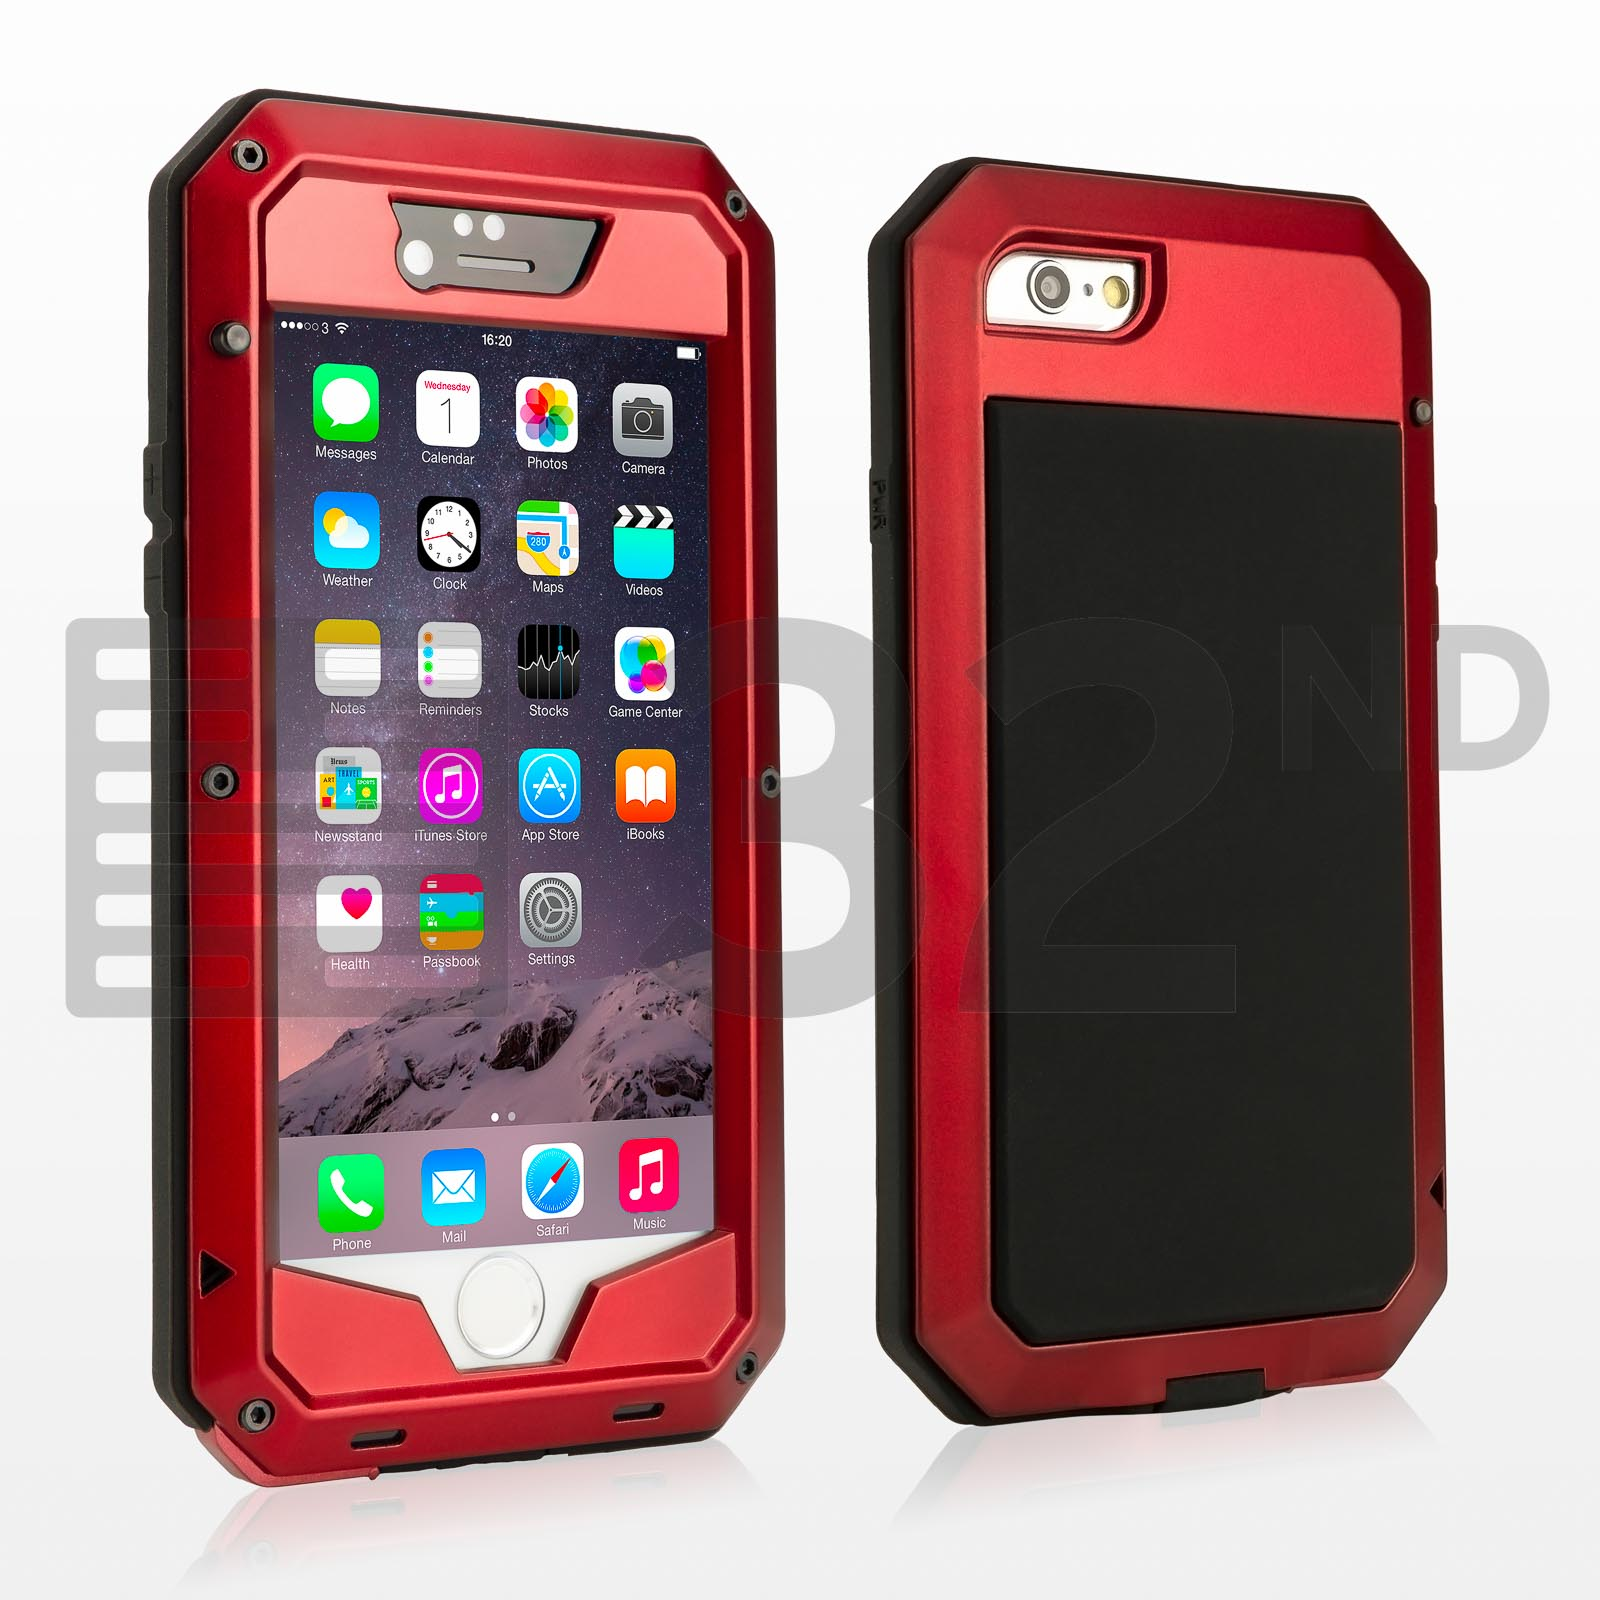 low priced 2917d 04792 Top 3 coolest phone cases of 2015 - 32ndShop